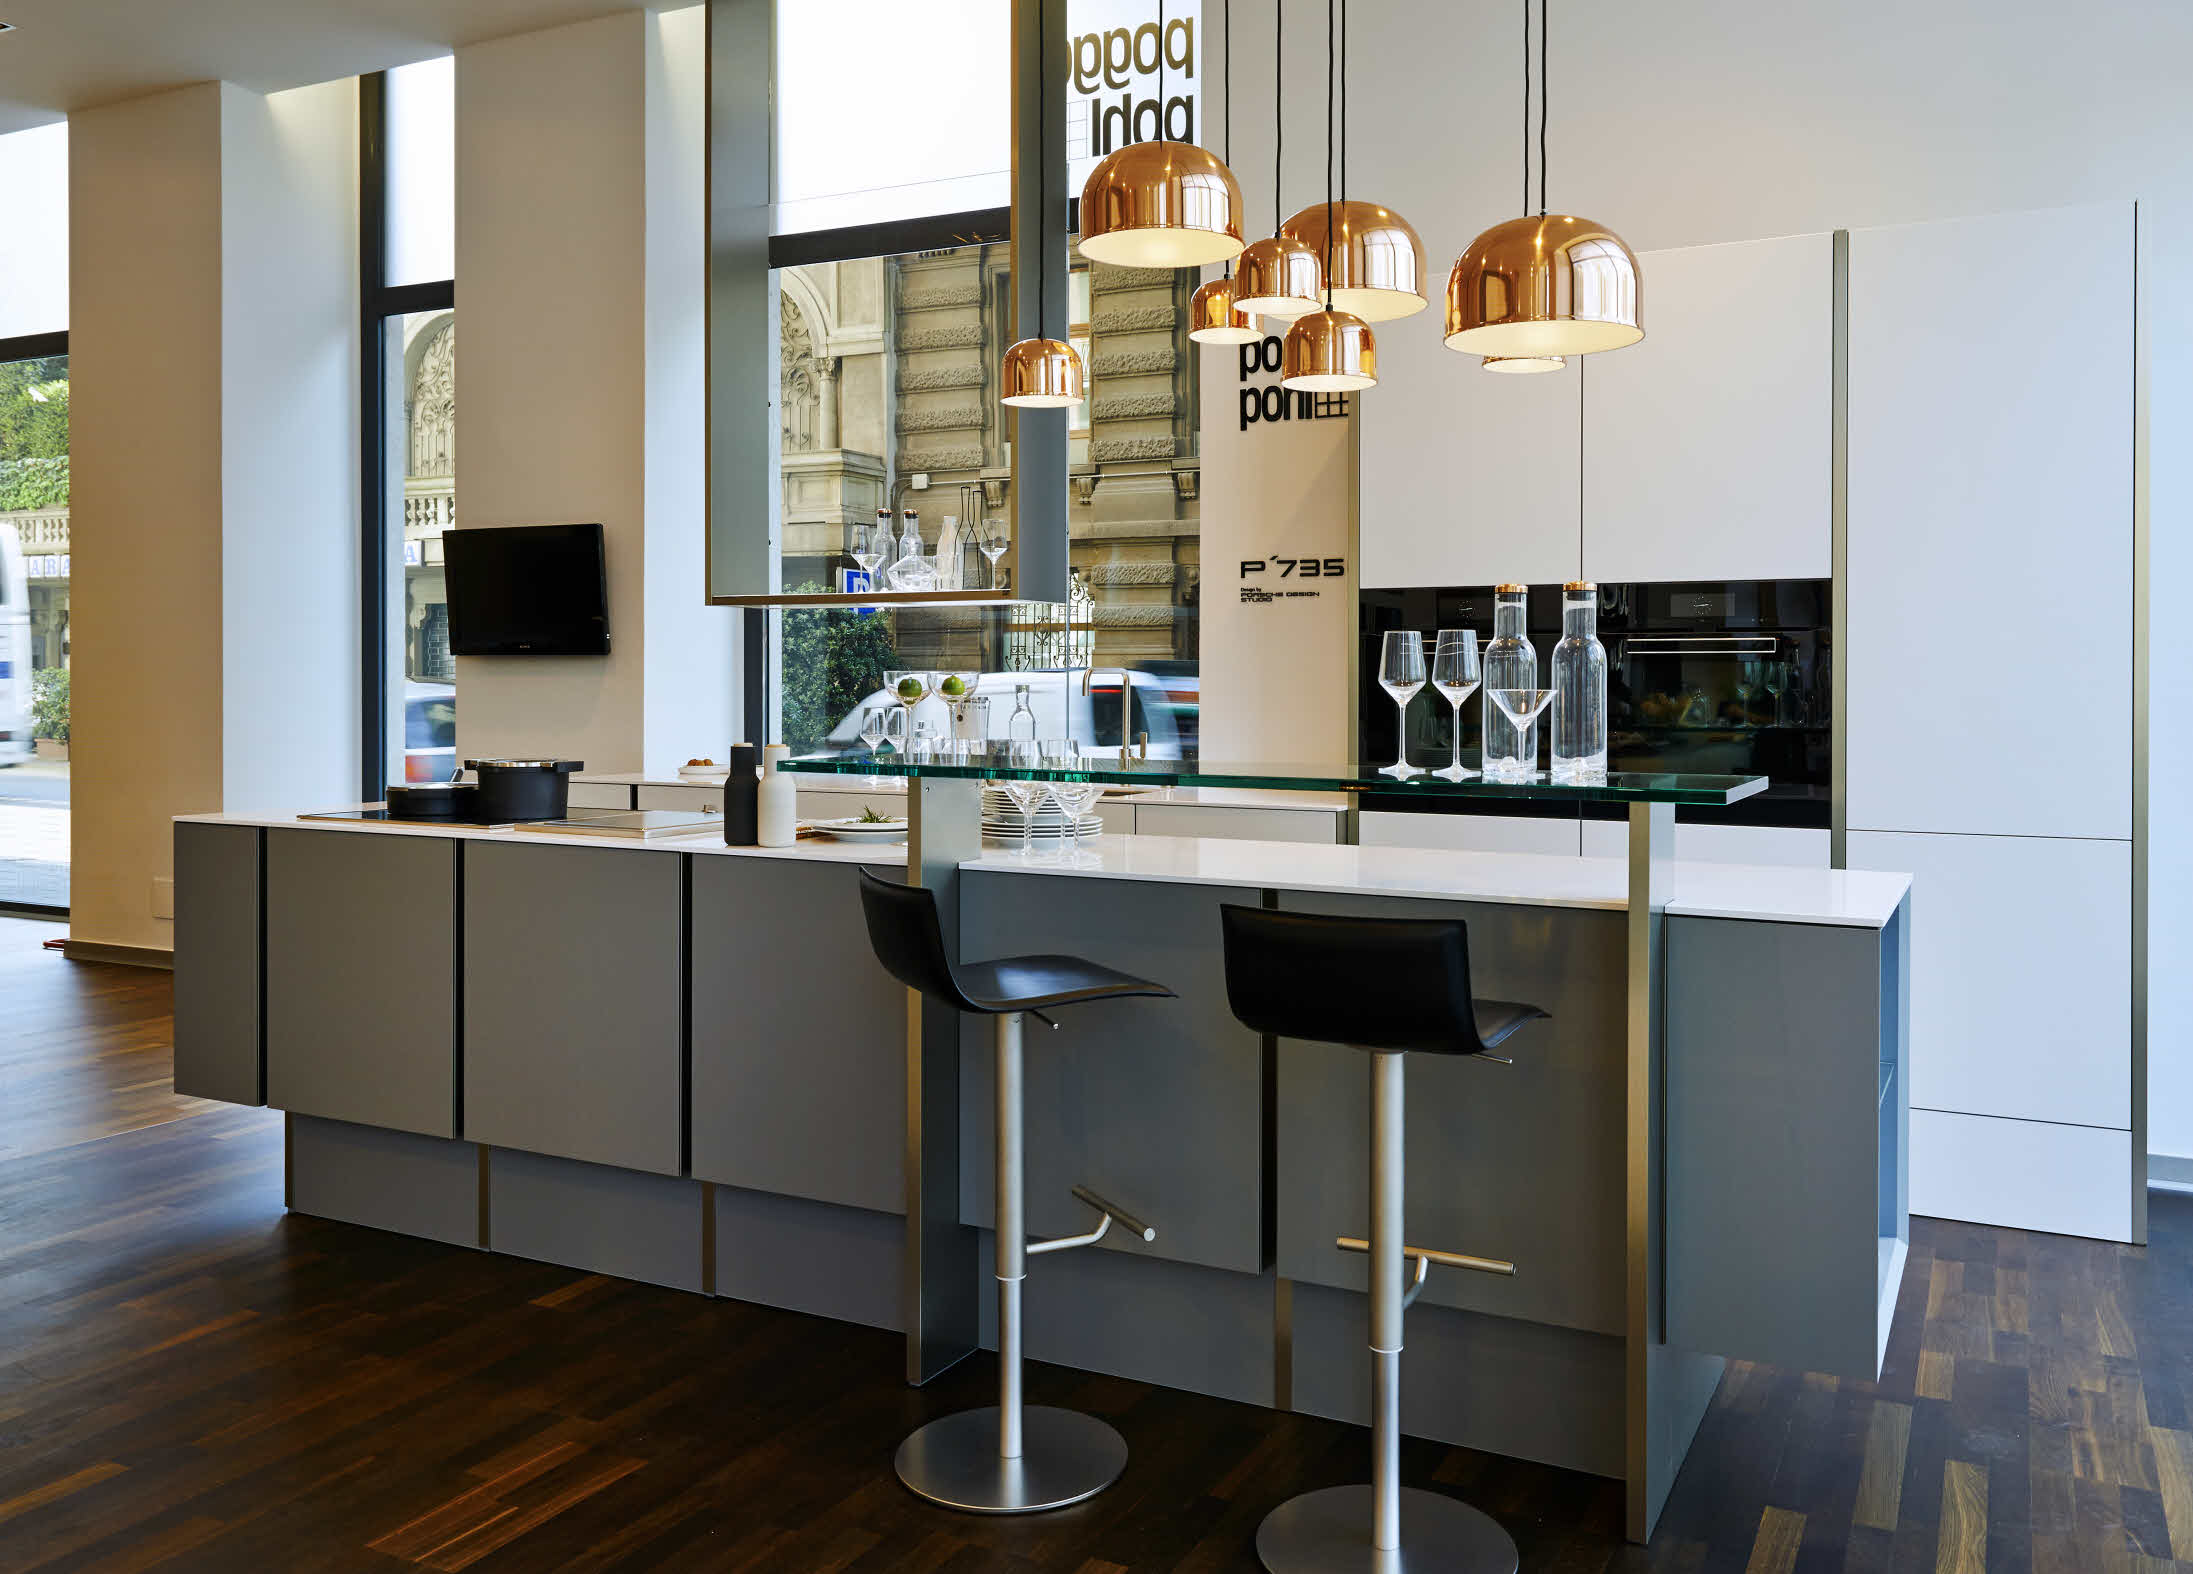 93a0f4878be8 ... Presentation P7350  Design Center Milan - Presentation P7350 4 ...